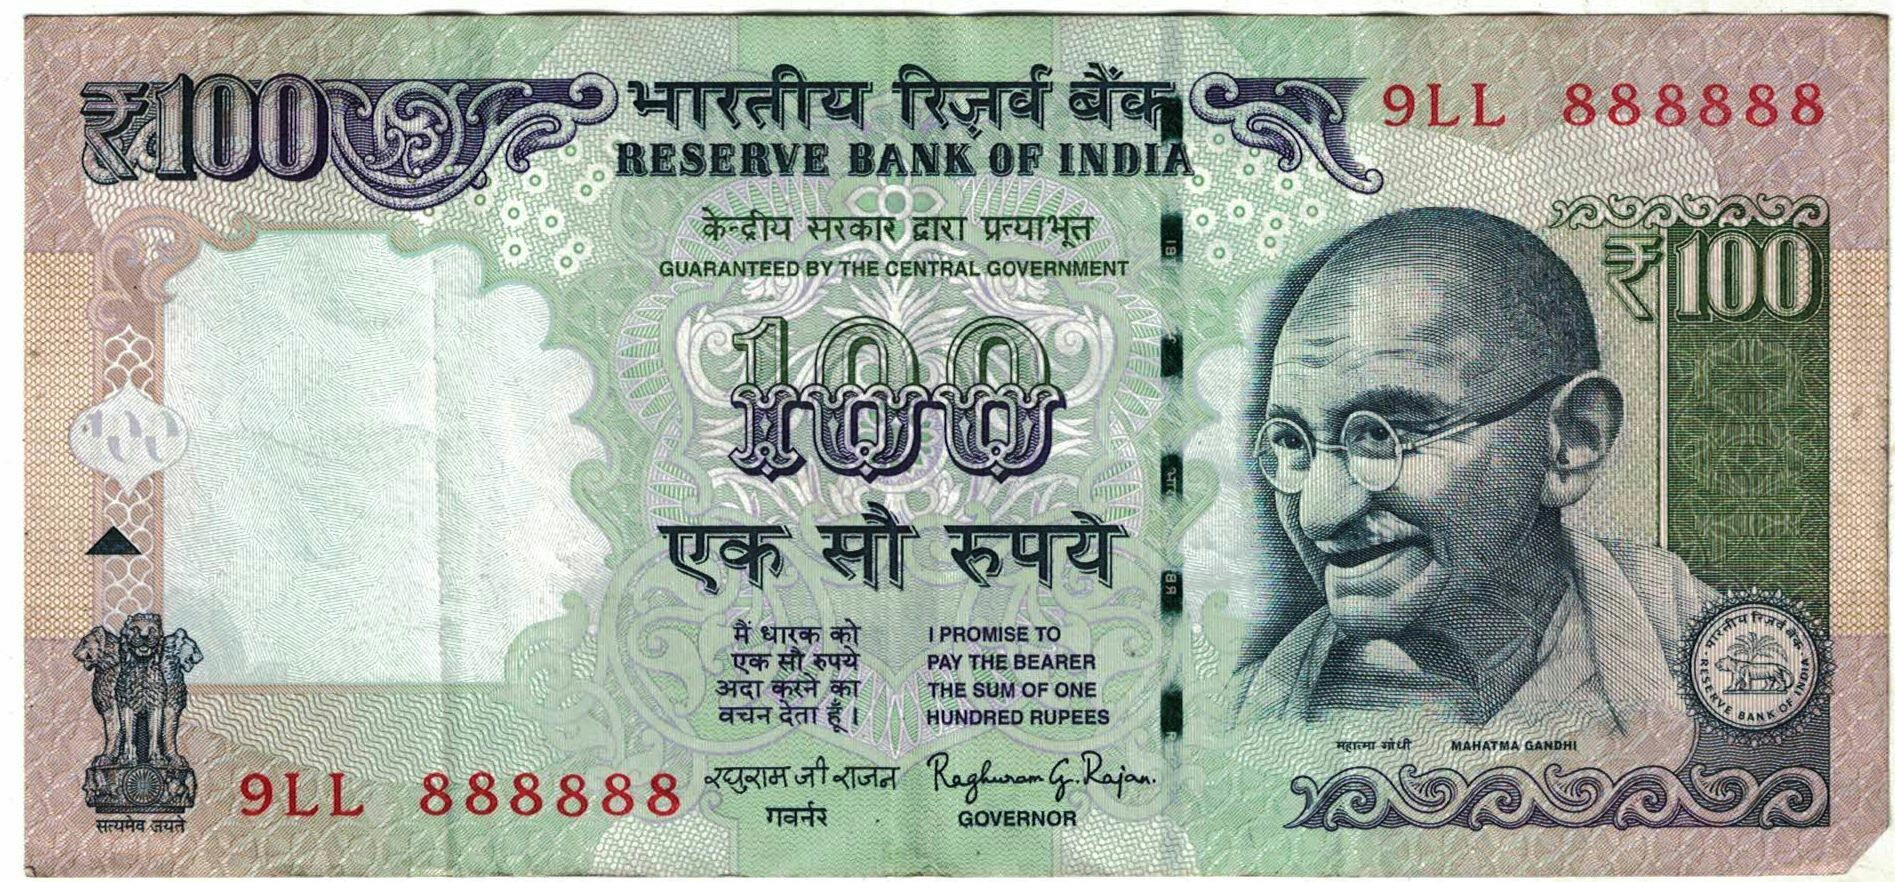 Indian Currency Rs 100 Note With Unique Serial Number 9ll 888888 Very Rare Collection Only At 11111 Contact Mail Shahrukh Ssk Gmail